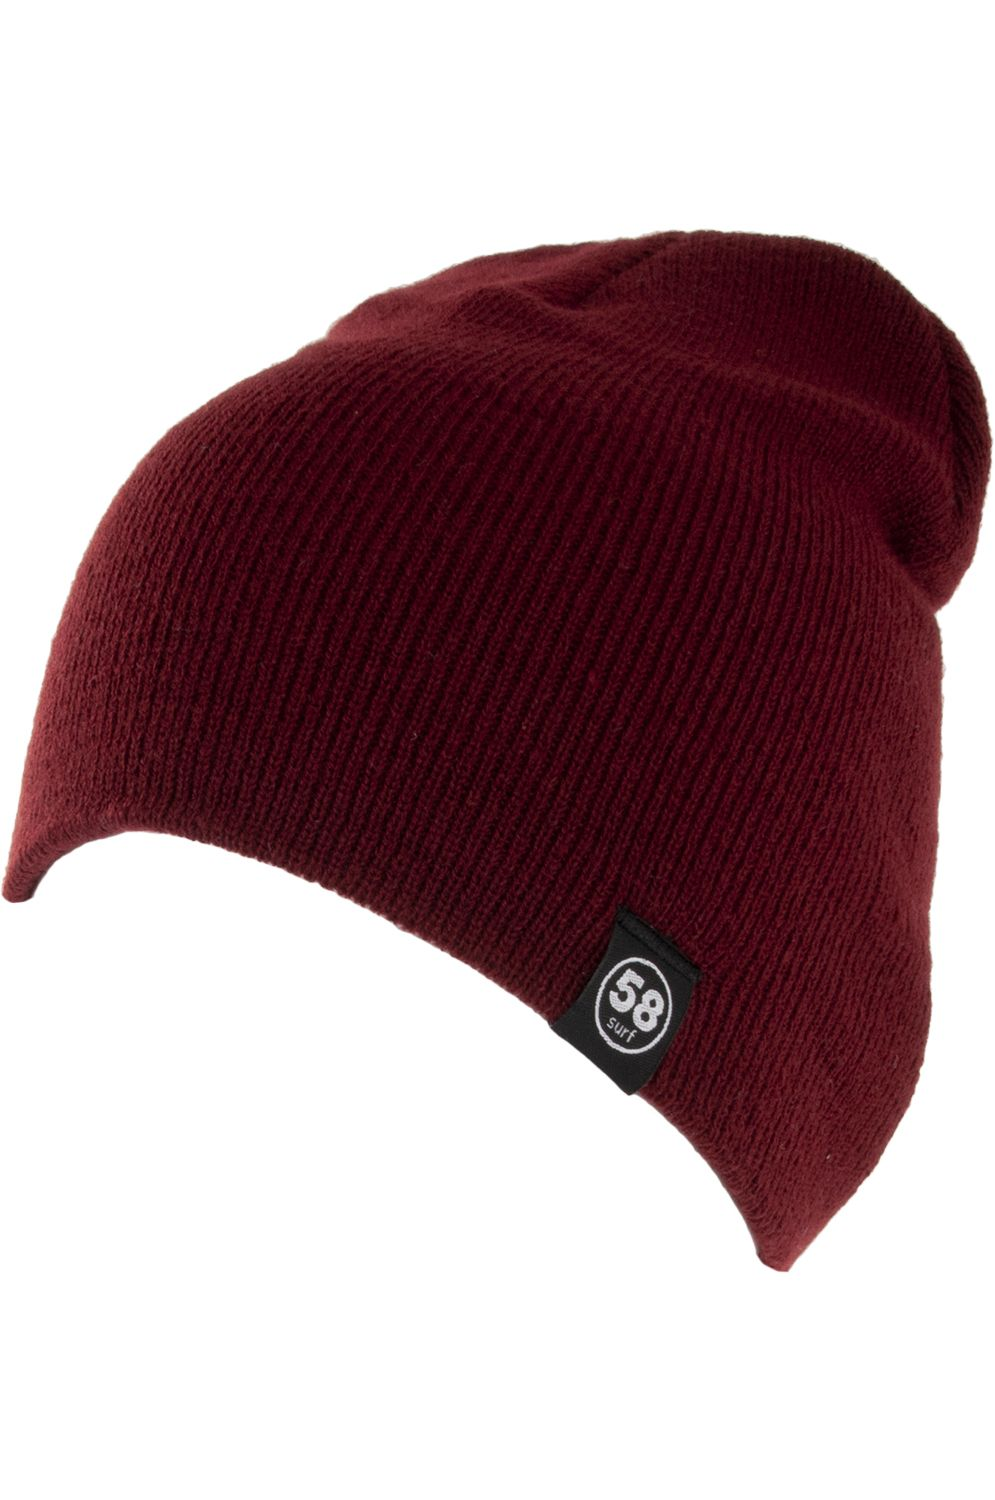 Gorro 58 Surf COMMUNITY Bordeaux